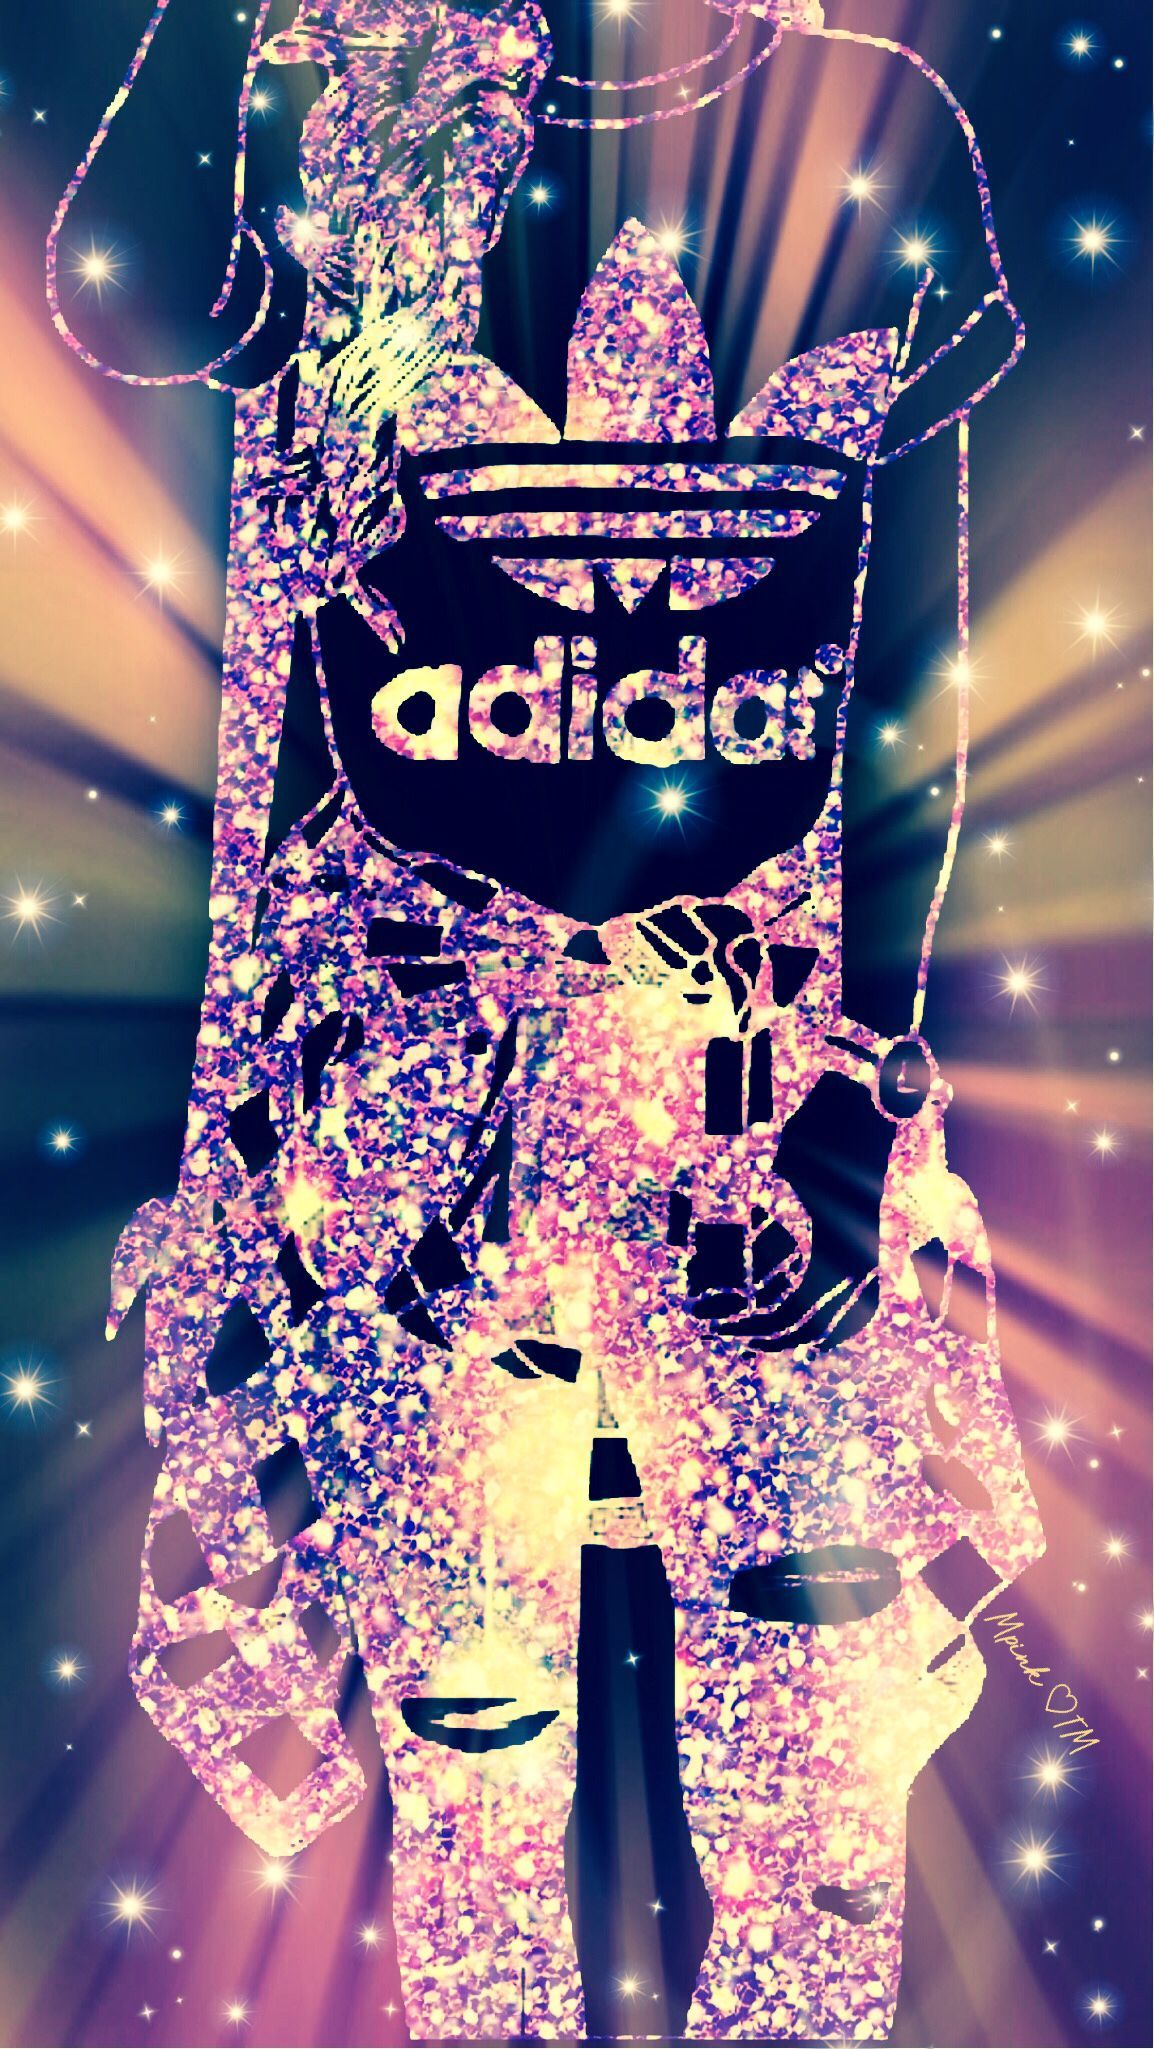 Adidas Girls Wallpapers Top Free Adidas Girls Backgrounds